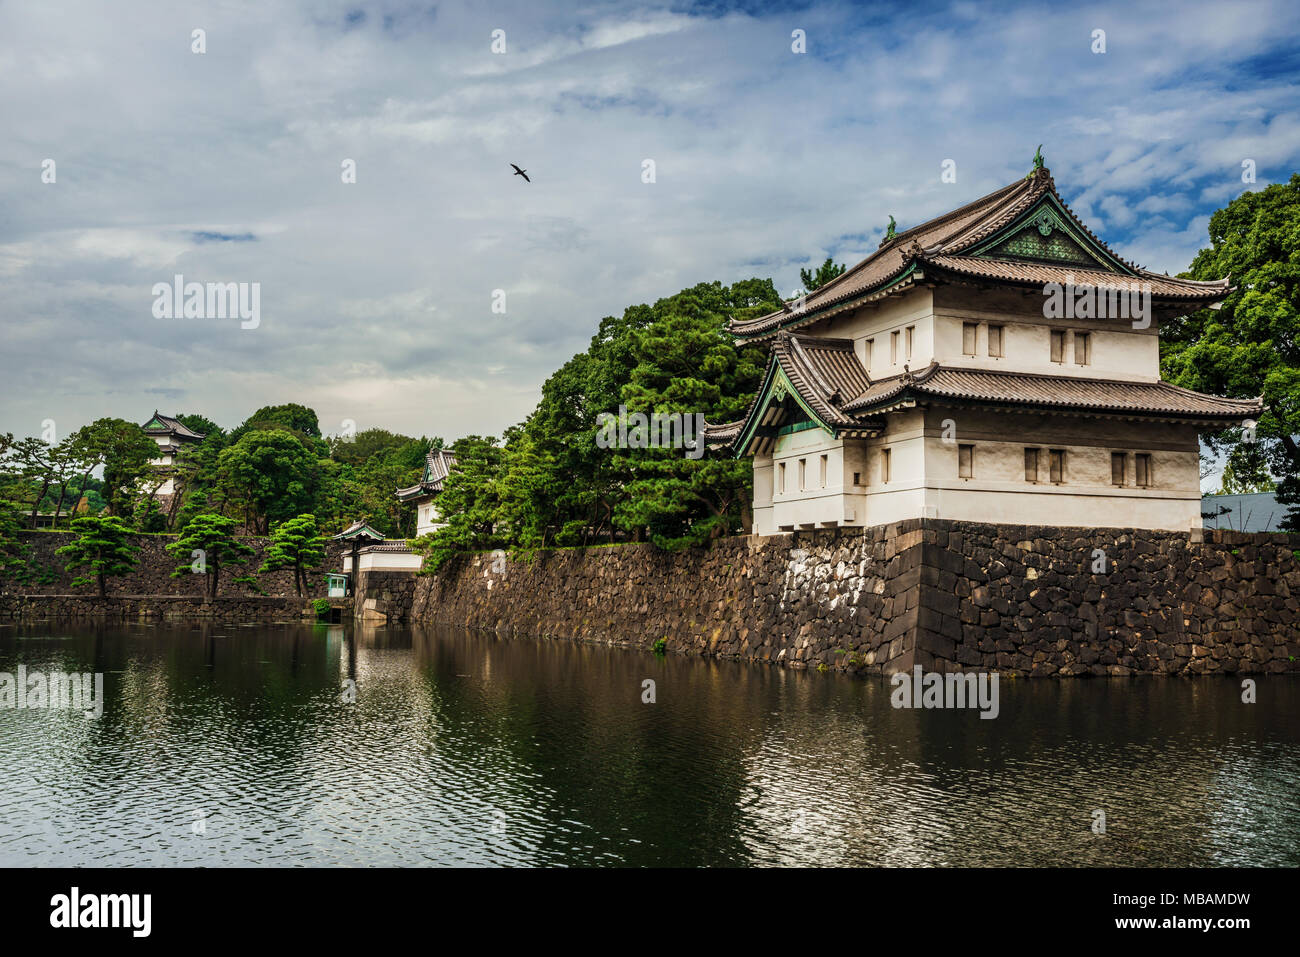 View of Tokyo Imperial Palace gardens ancient walls, fortified gate and moat Stock Photo